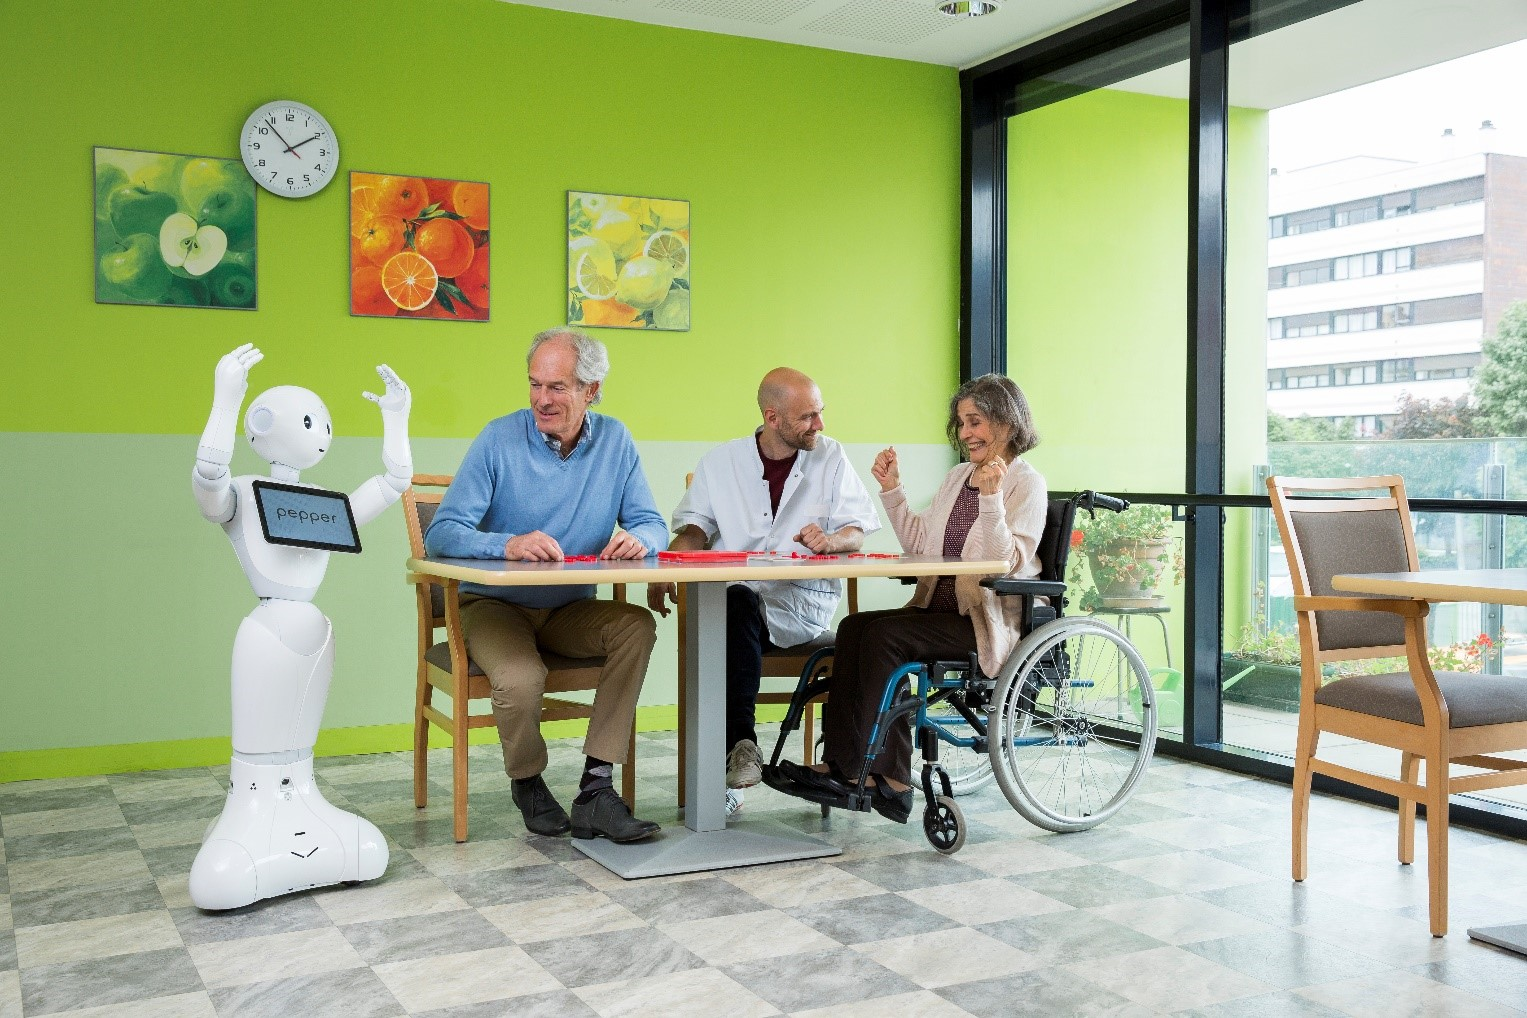 Pepper Robot for Healthcare Institutions By Jackys Business Solutions Dubai